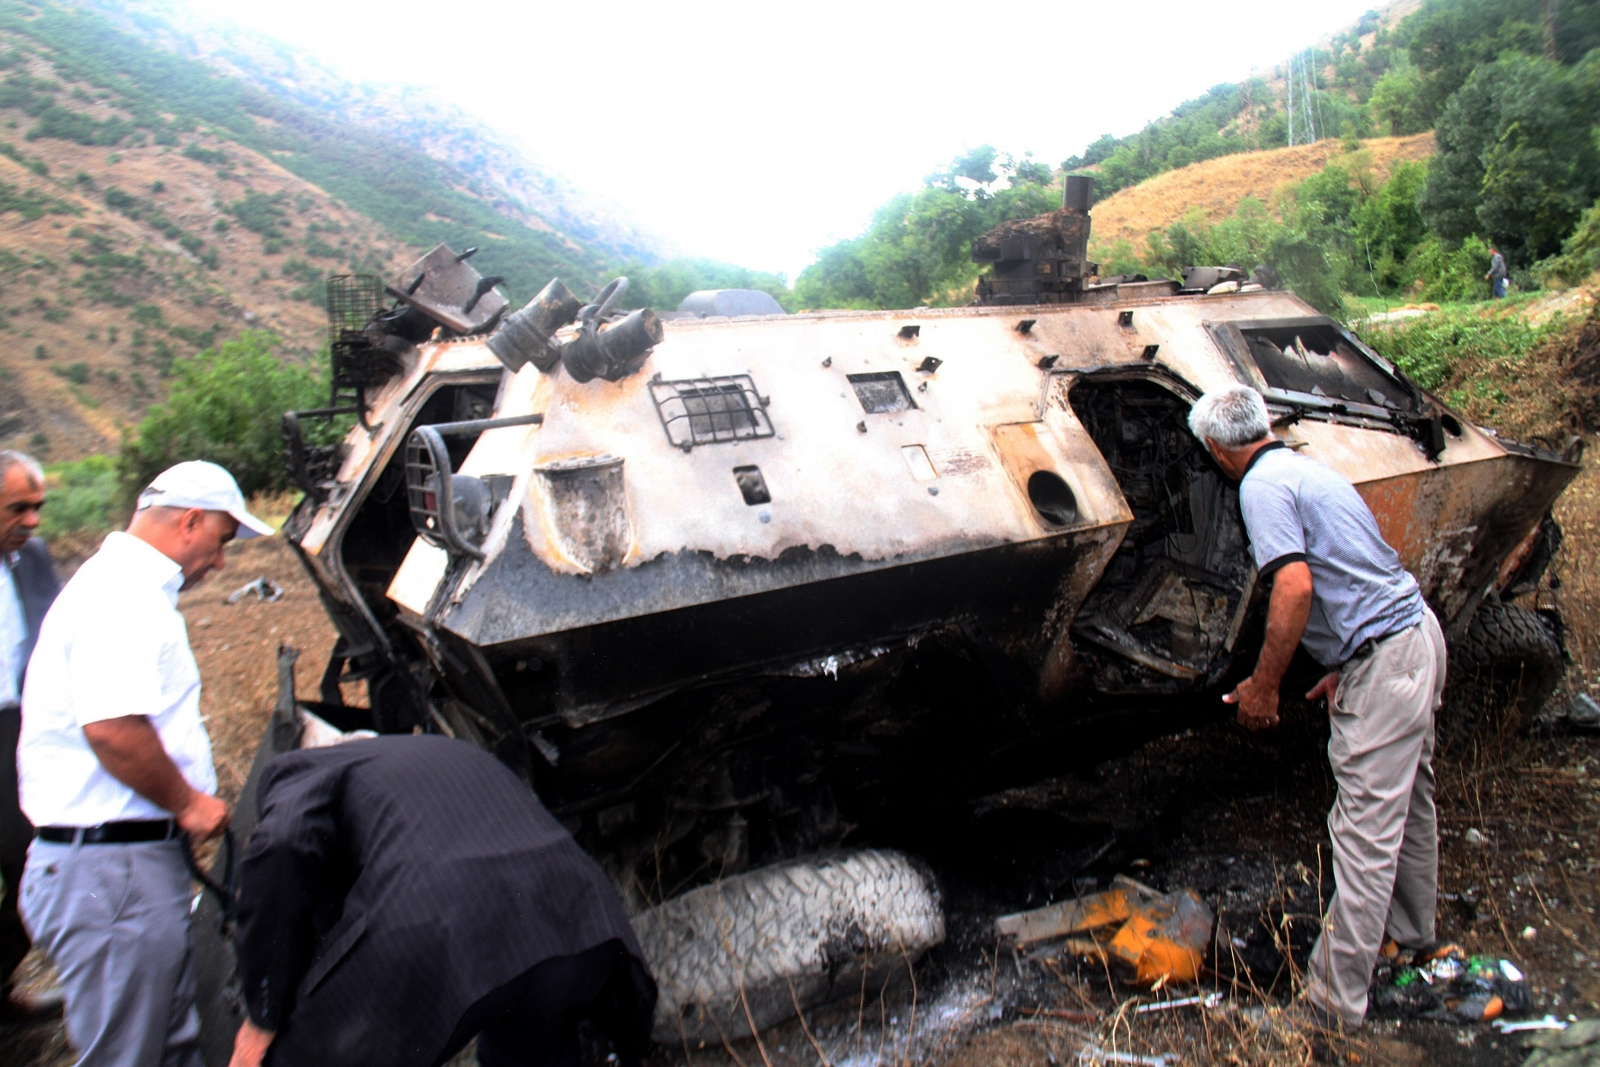 Turkey PKK violence